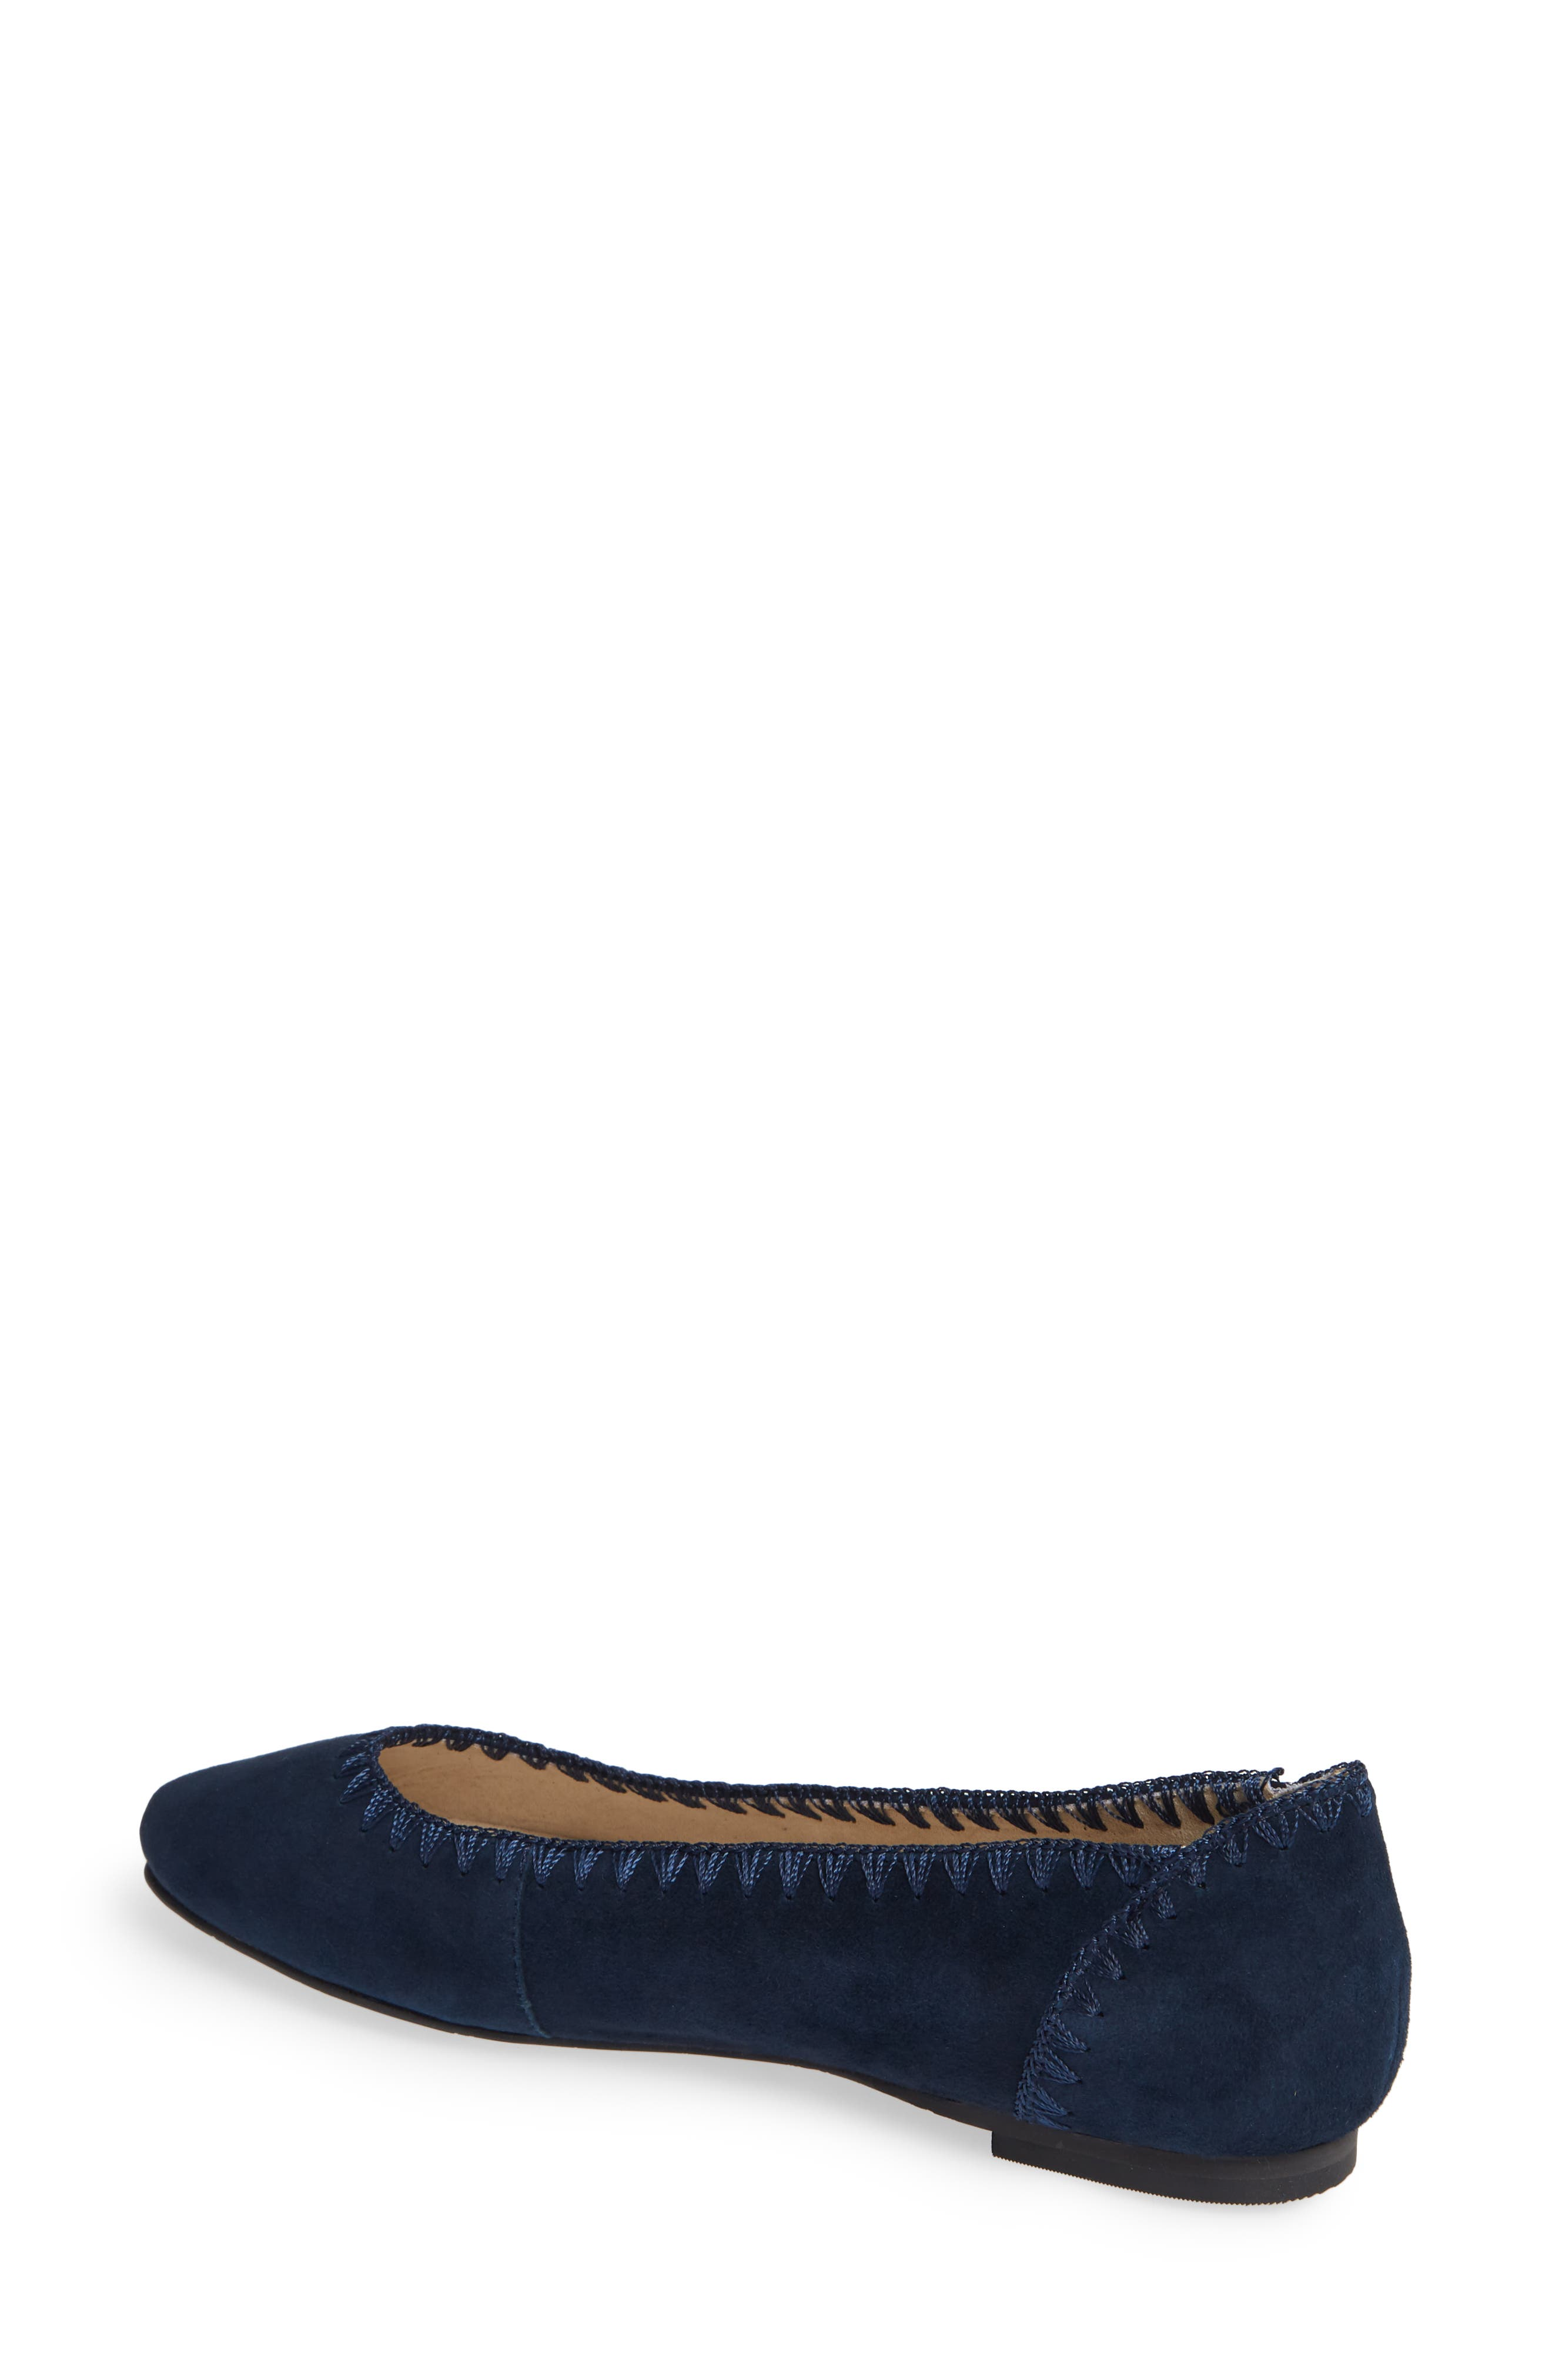 Ellie II Flat,                             Alternate thumbnail 2, color,                             MIDNIGHT BLUE SUEDE